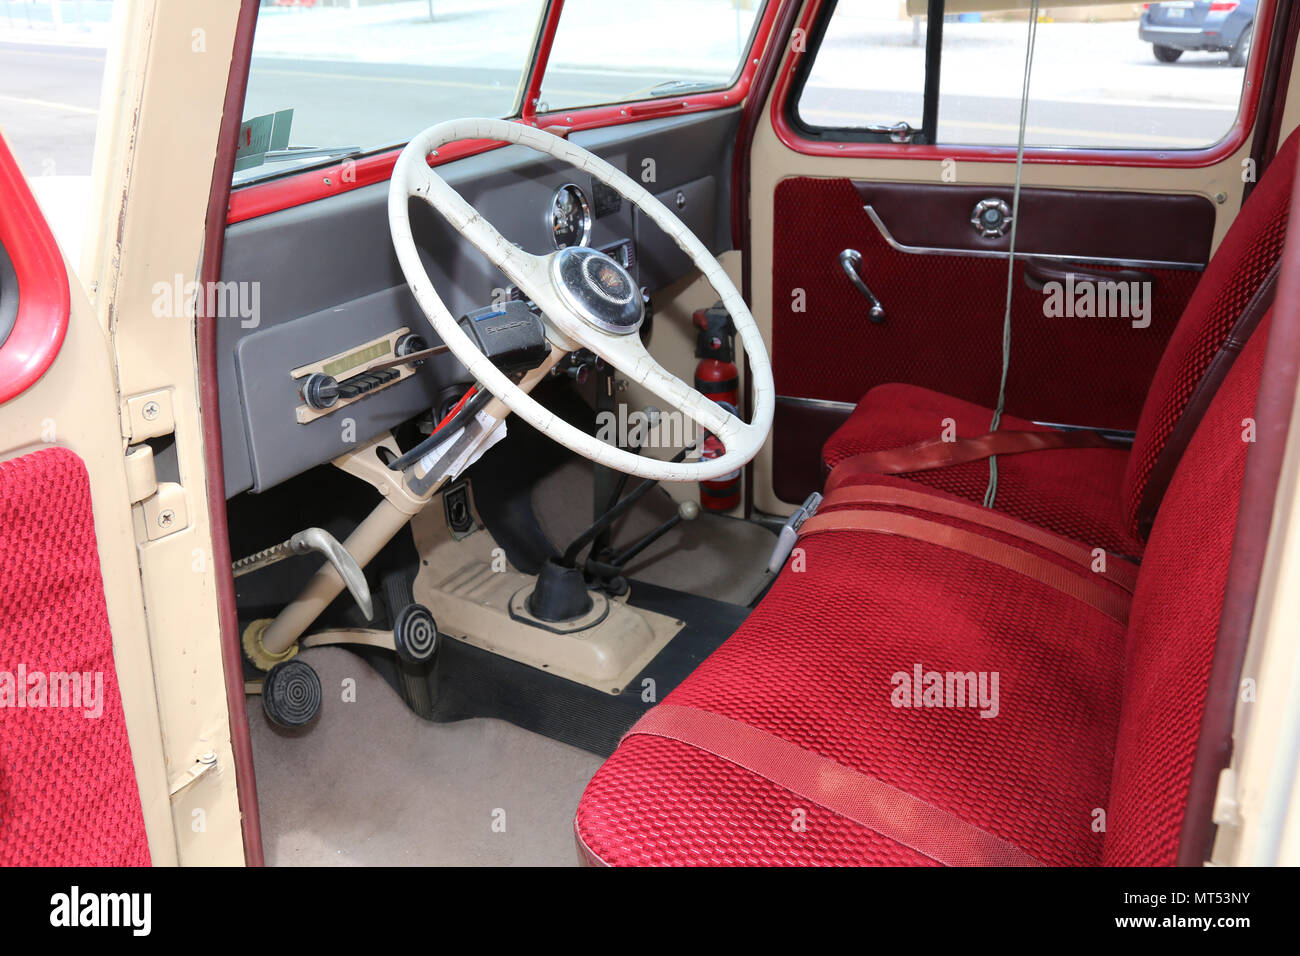 The interior of the Willys Station Wagon was utilitarian in